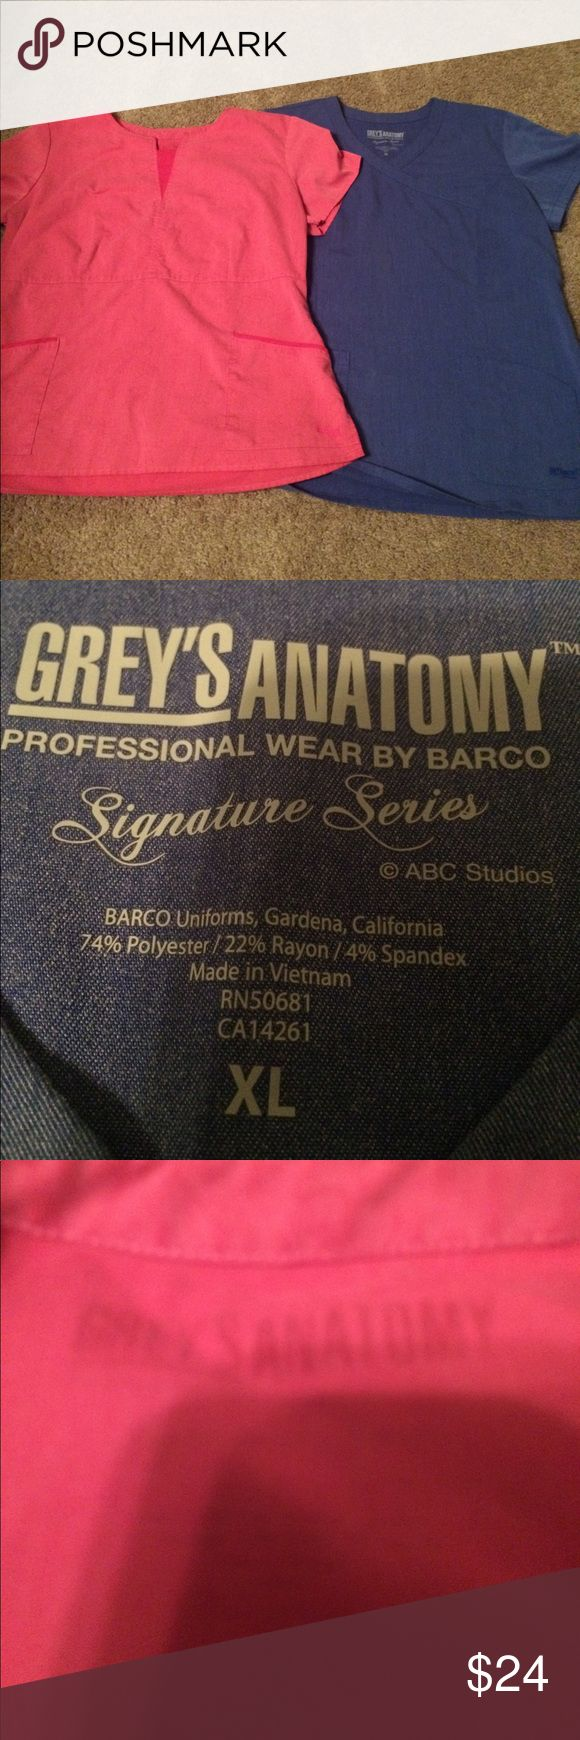 Grey's anatomy 2 scrub tops size extra large Two Grey's Anatomy size extra large scrub tops. See my other scrubs would love to bundle and save you money grey's Anatomy Tops